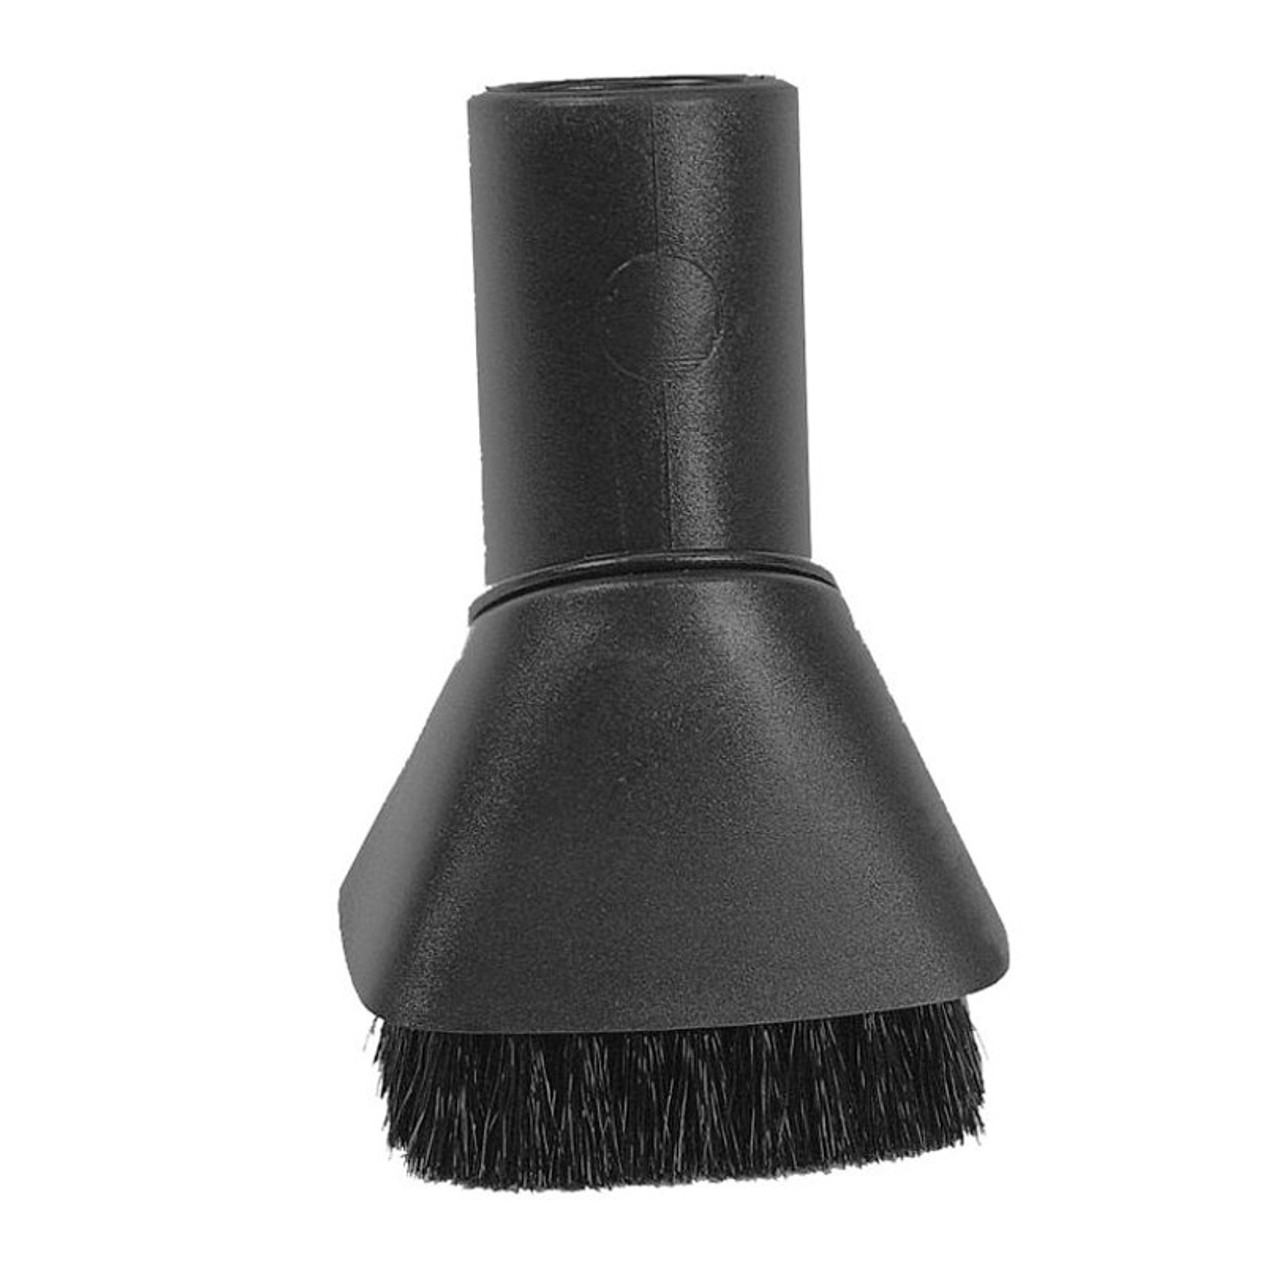 """2.5"""" Dust brush gently for removing dust off of blinds, lampshades and furniture and more."""